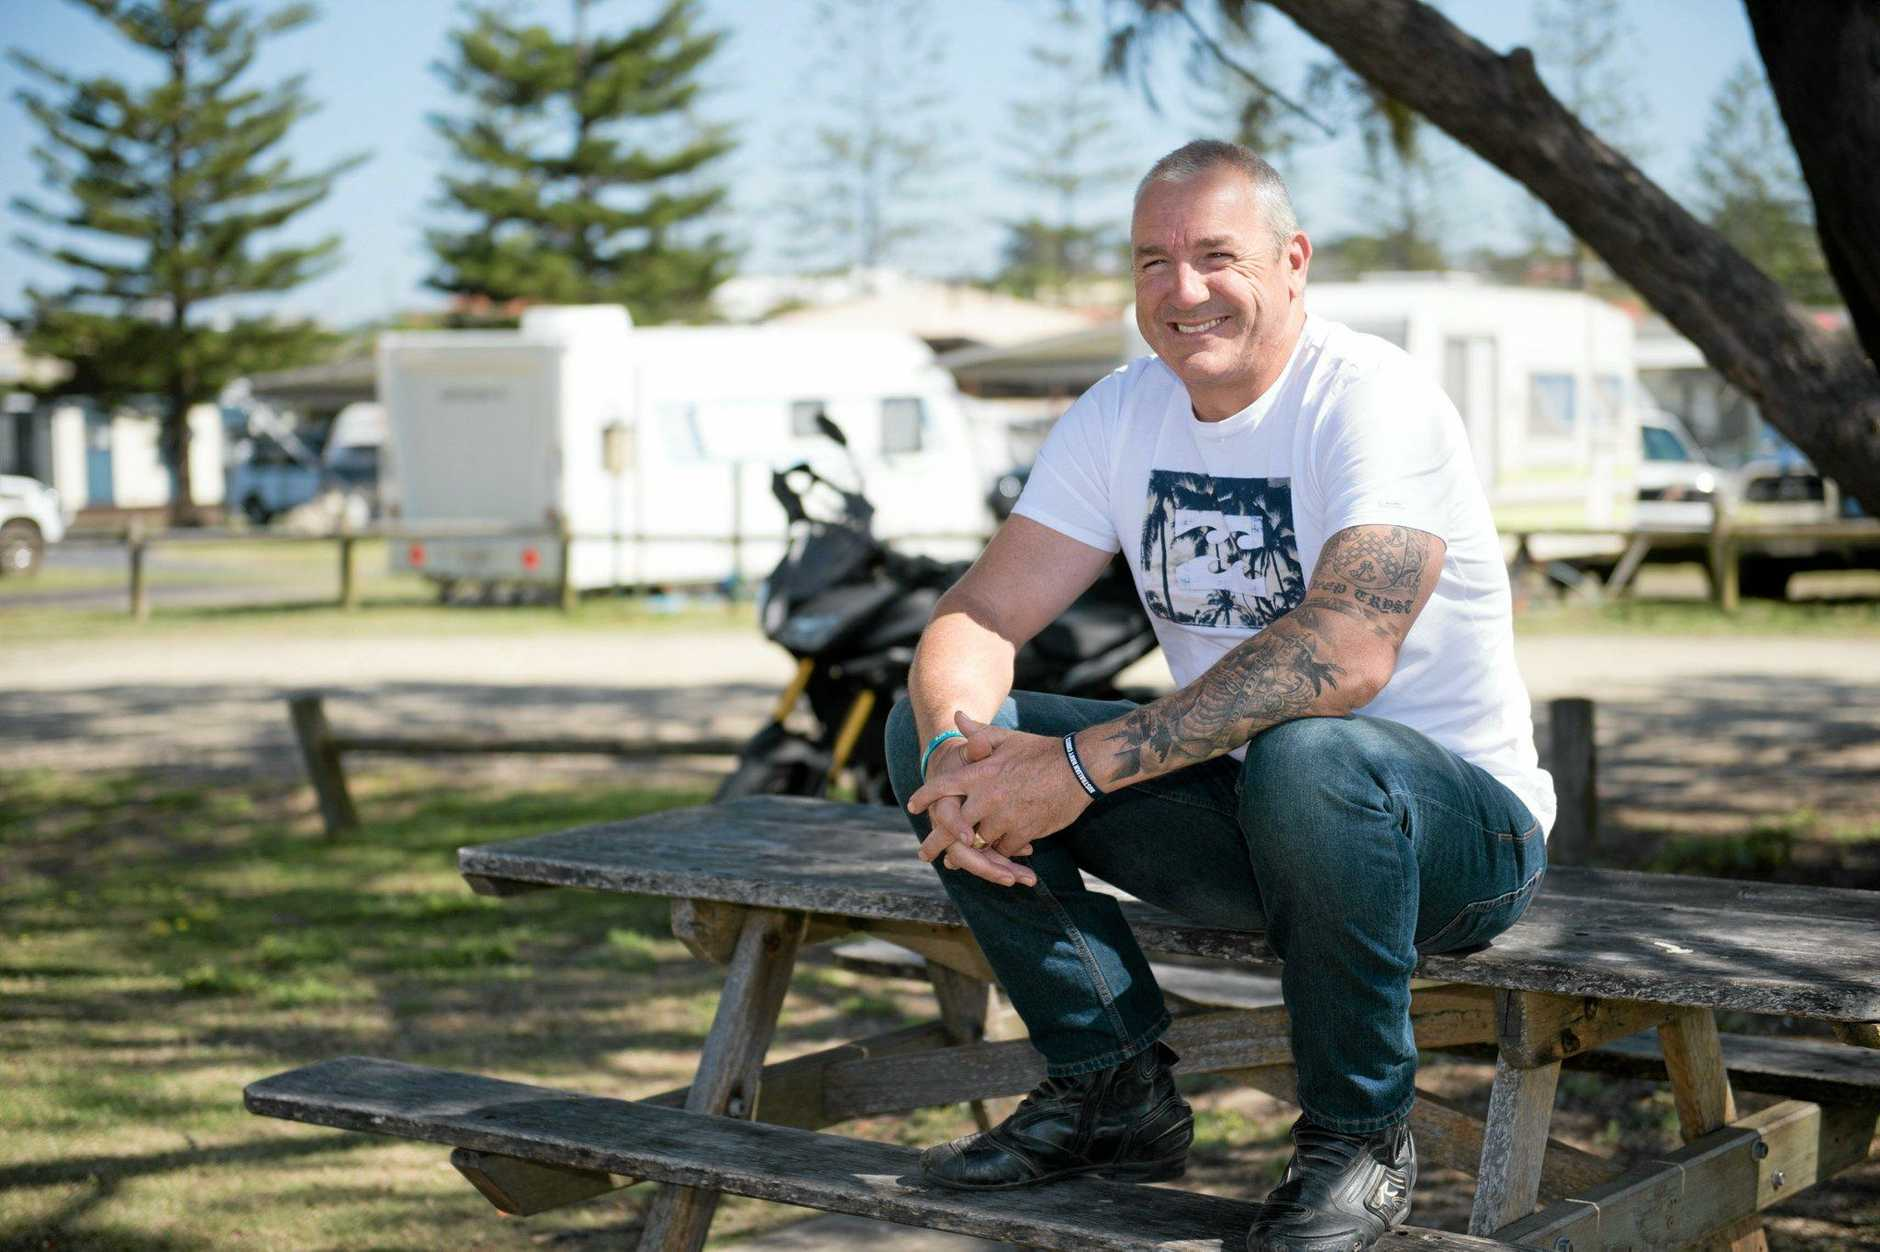 ON THE MEND: Former detective Craig Semple is speaking out about his battle with PTSD and depression in a bid to help others.